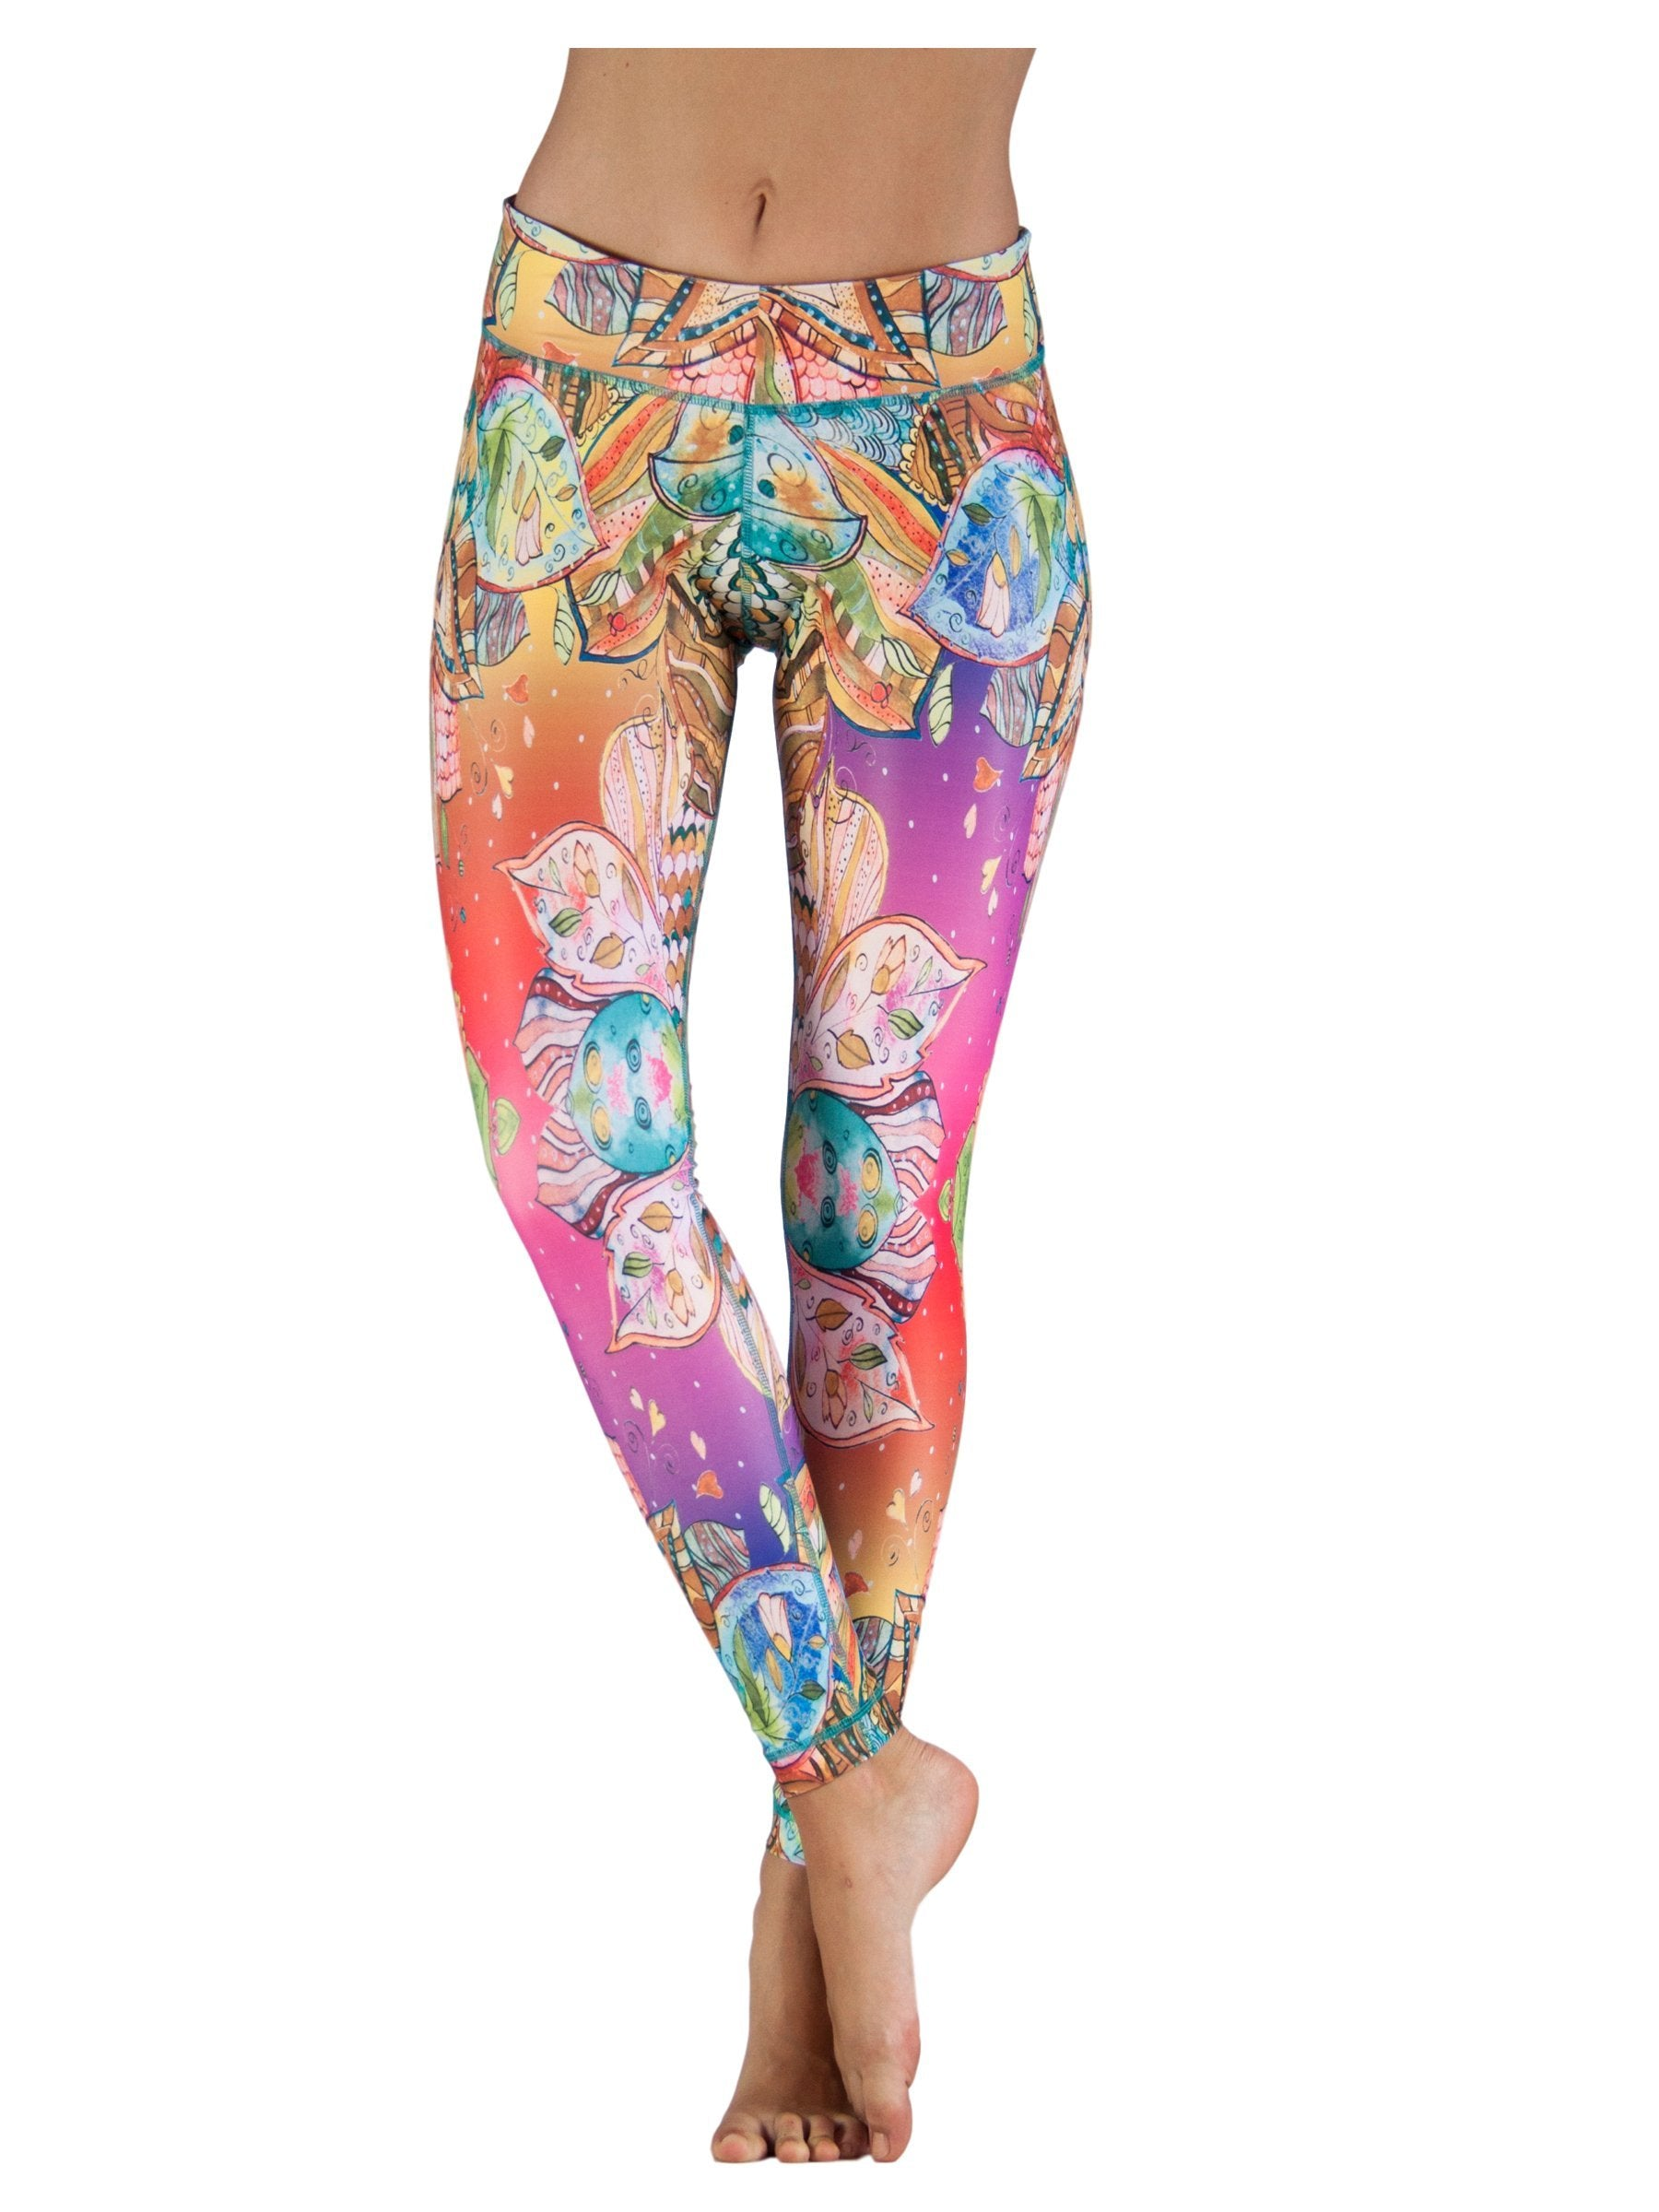 Barcelona by Niyama - High Quality, Yoga Legging for Movement Artists.